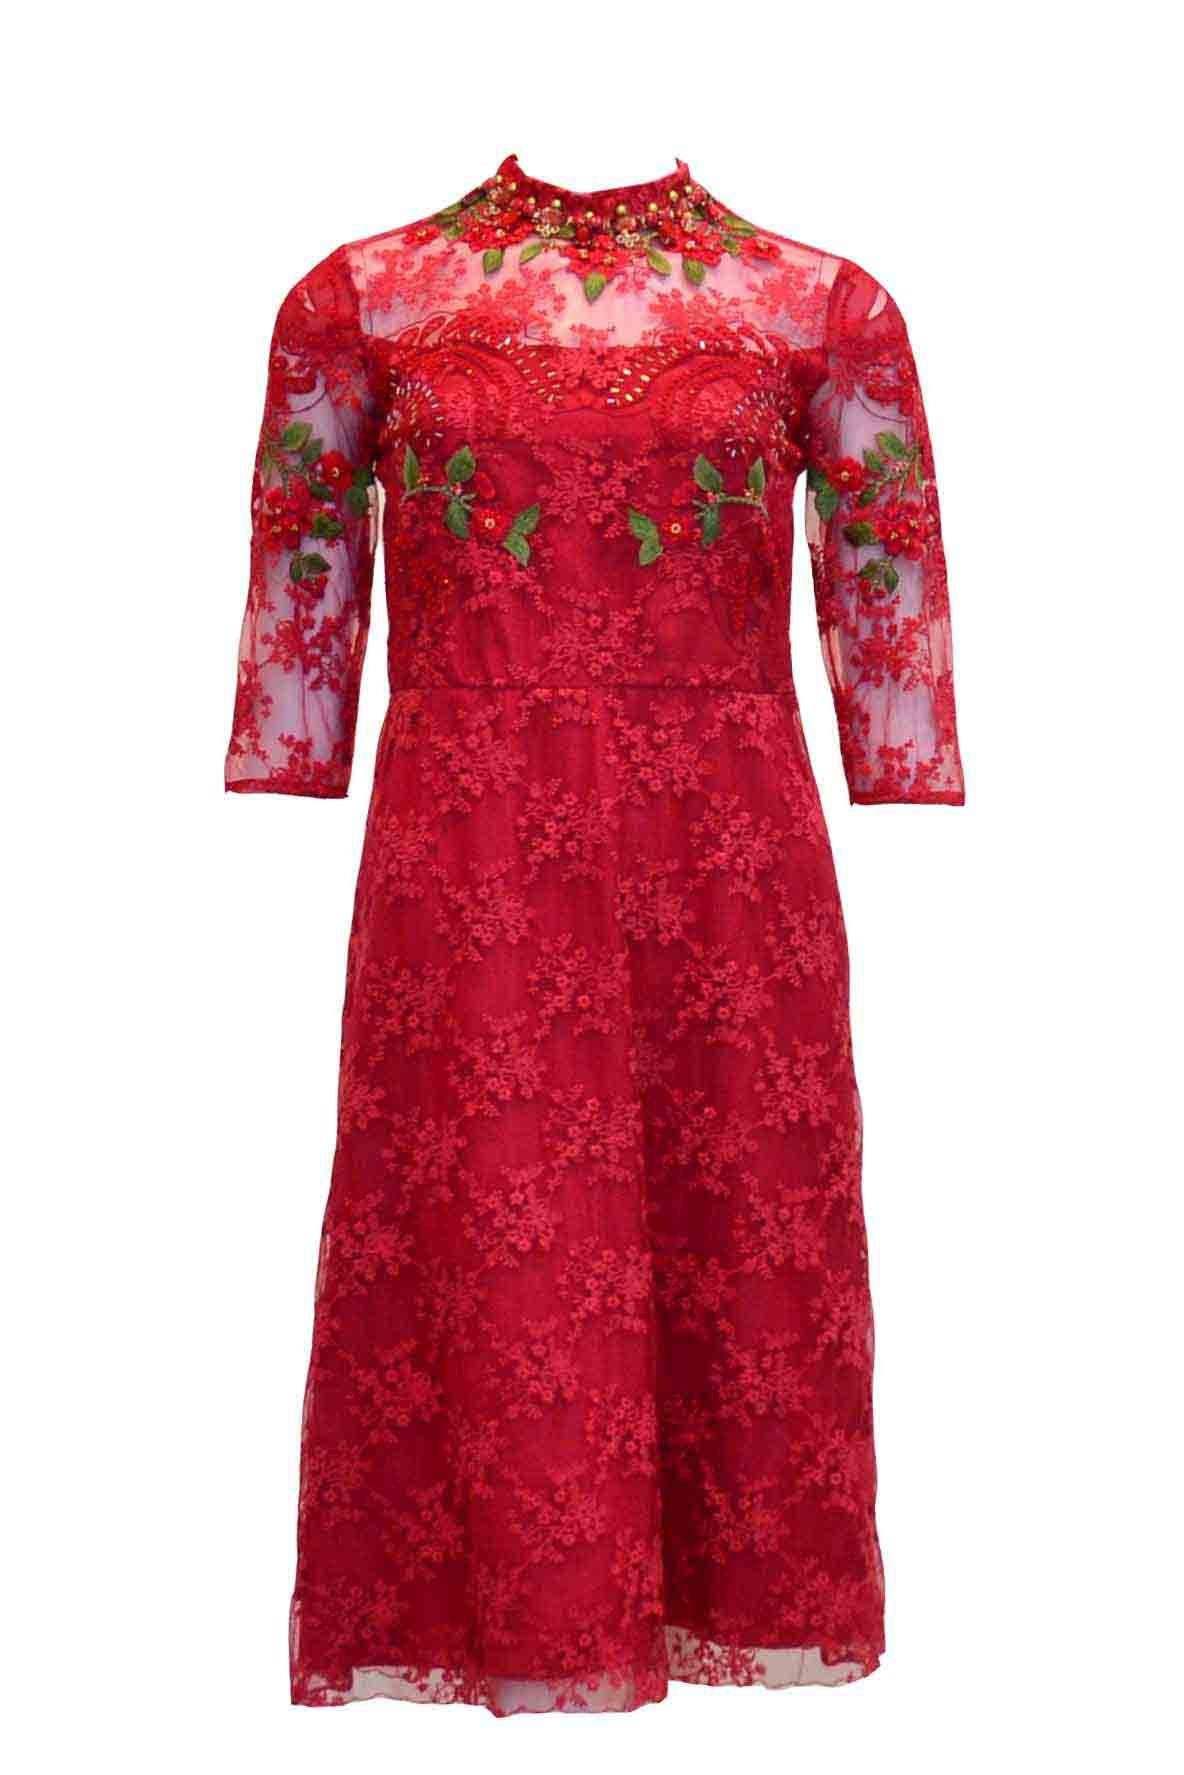 Rent: Studio 133 by Biyan 3/4 Sleeves Red Lace Cocktail Dress